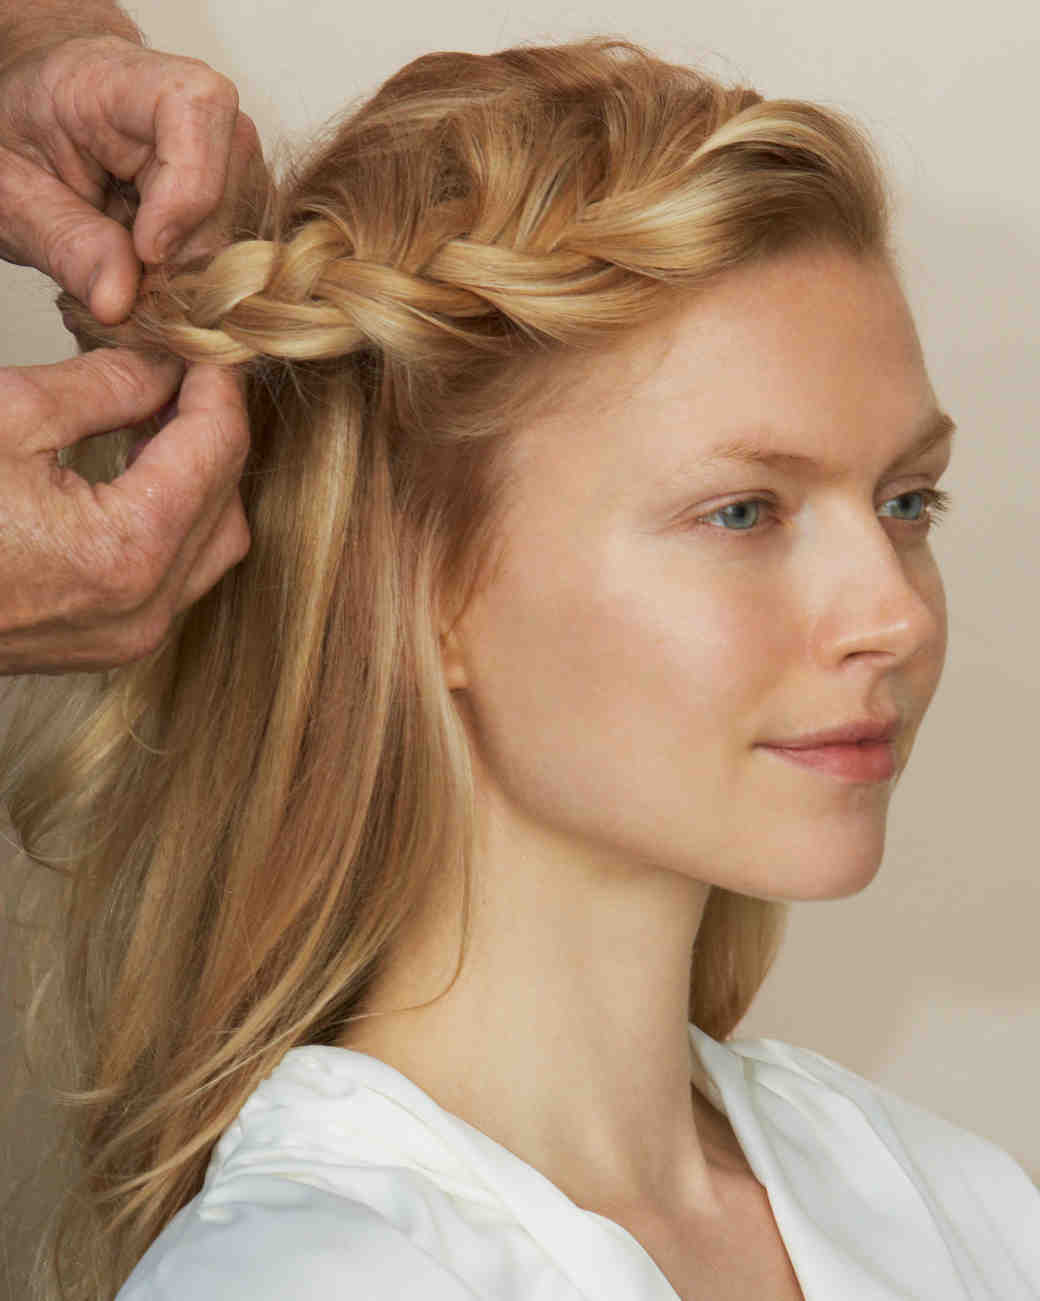 hair-prep-braid-075-wd110254.jpg